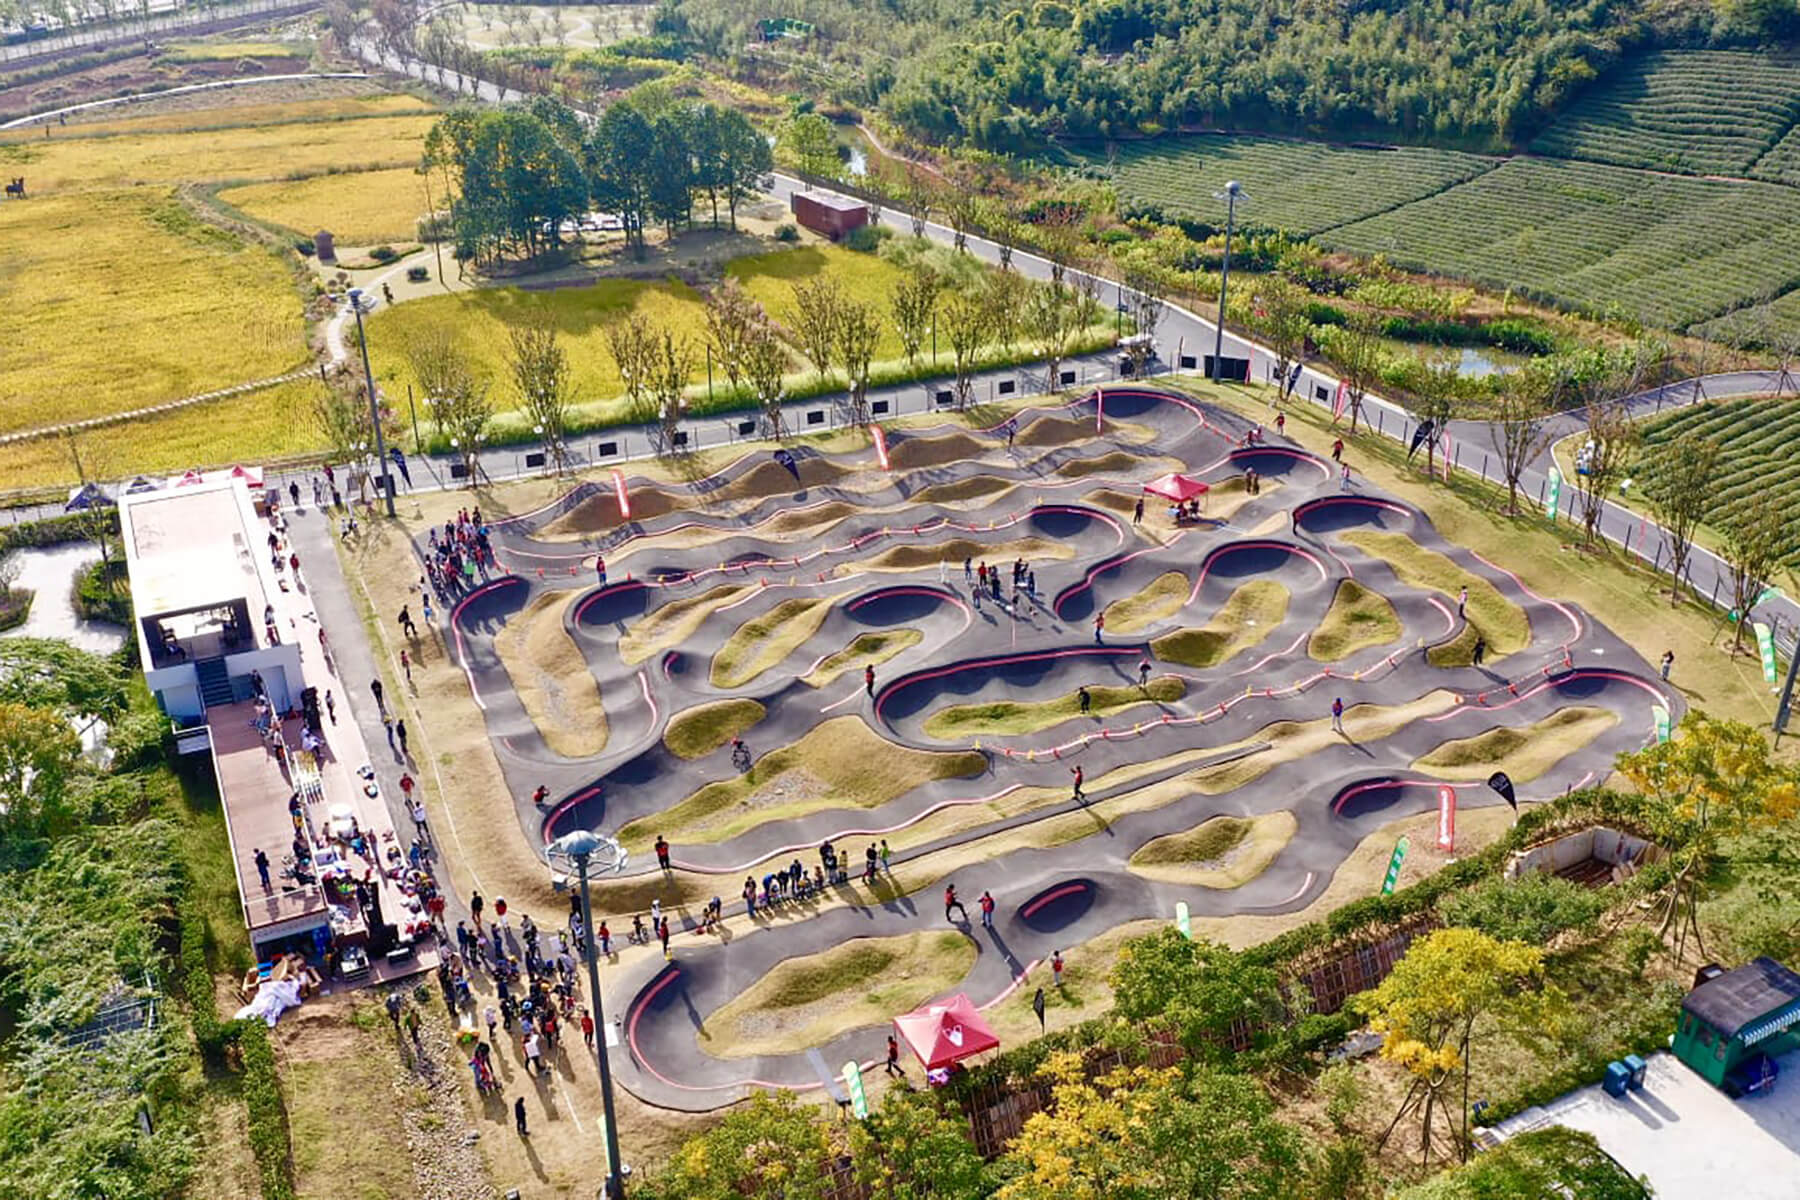 Red Bull Pump Track Deqing, China - Velosolutions